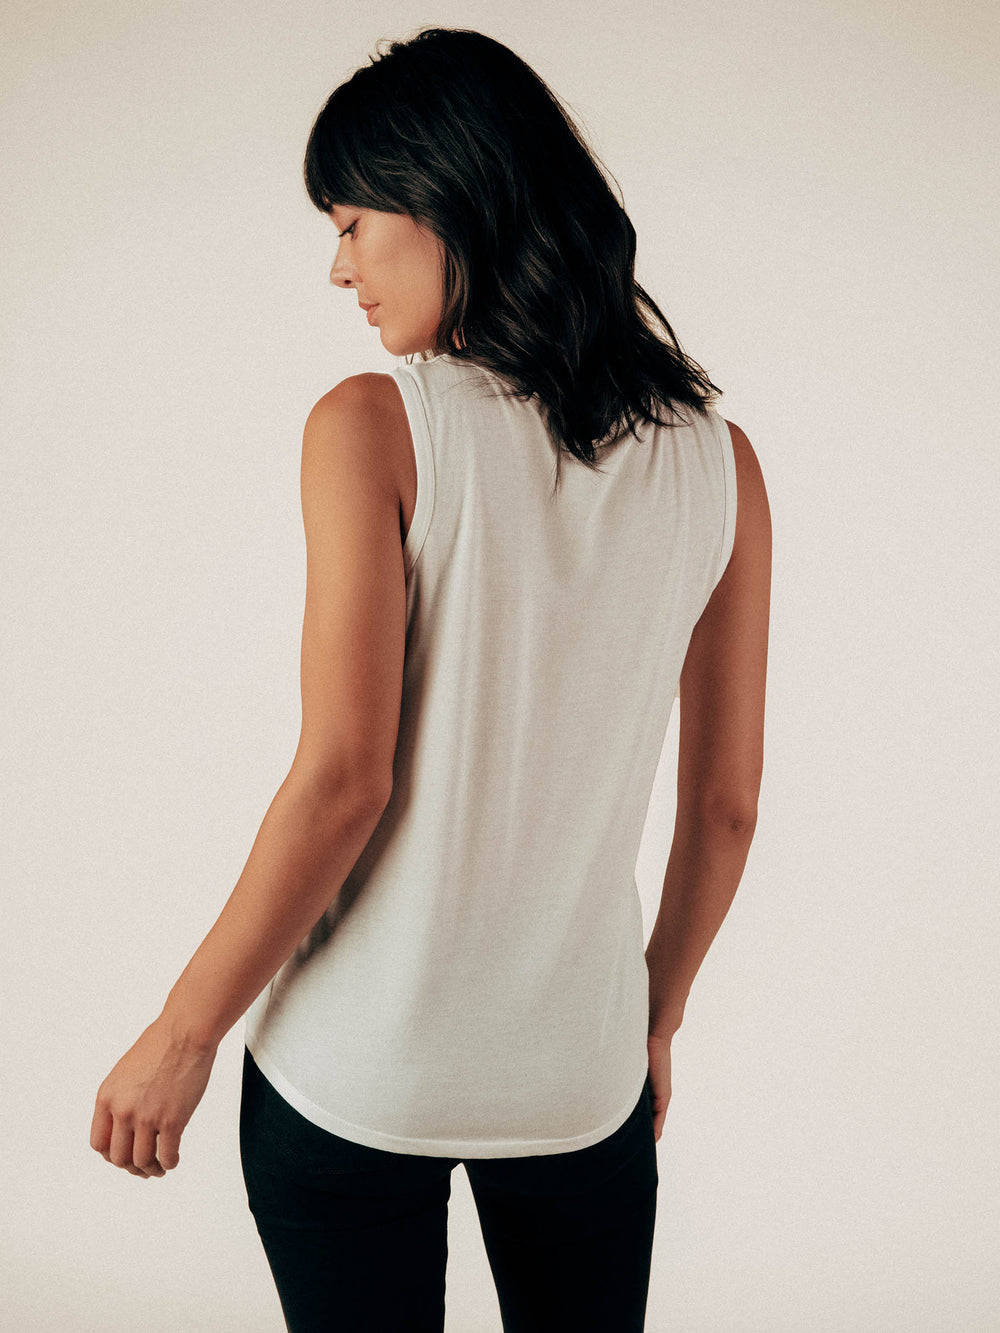 Creamy White Tank Top Curved Hem Tee - Graceful District